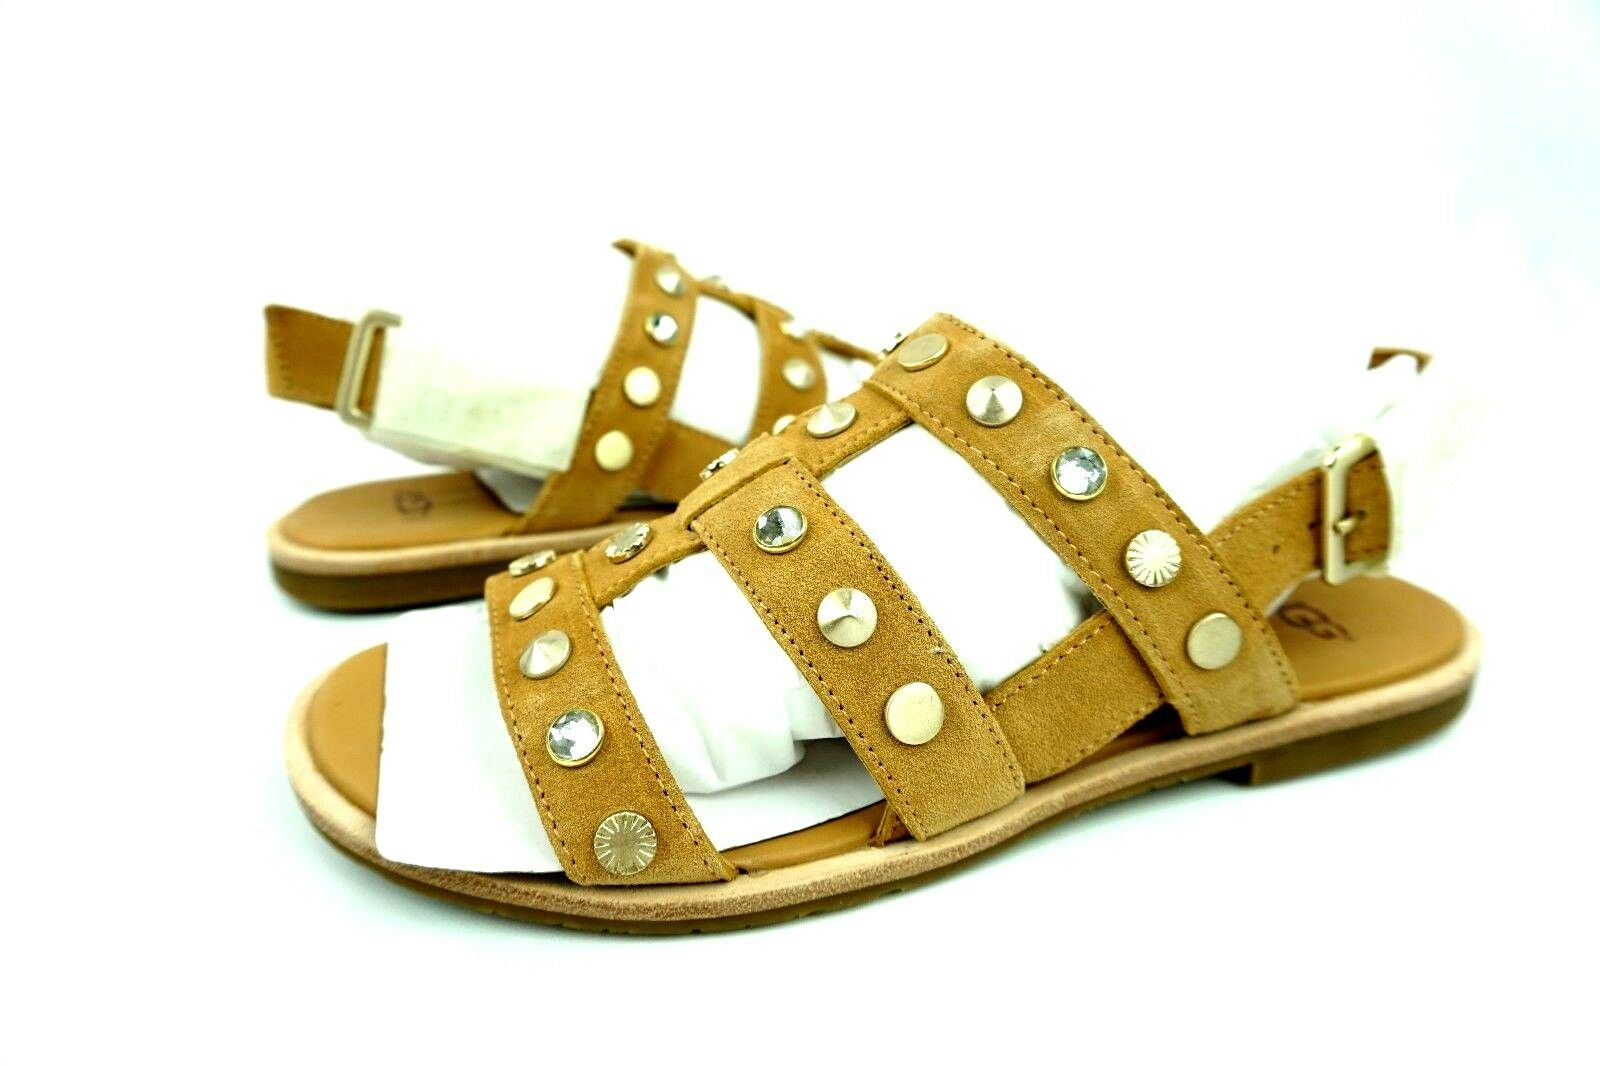 179c967dea22 UGG Zariah Studded Bling Latte Color Gladiator Sandals Size 7.5 US ...